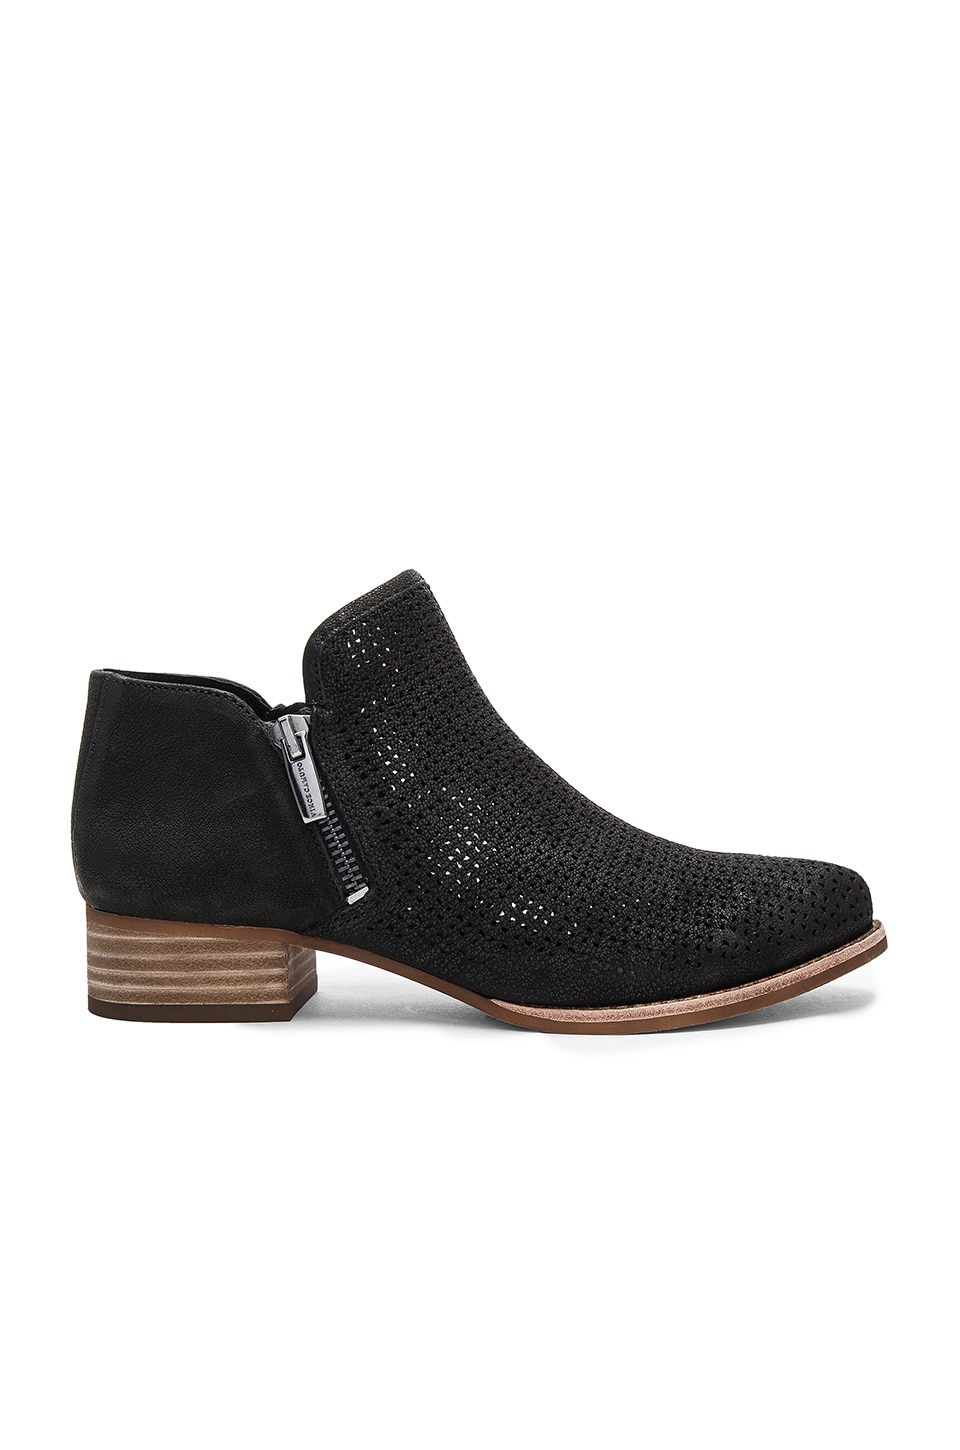 Canilla Booties by Vince Camuto